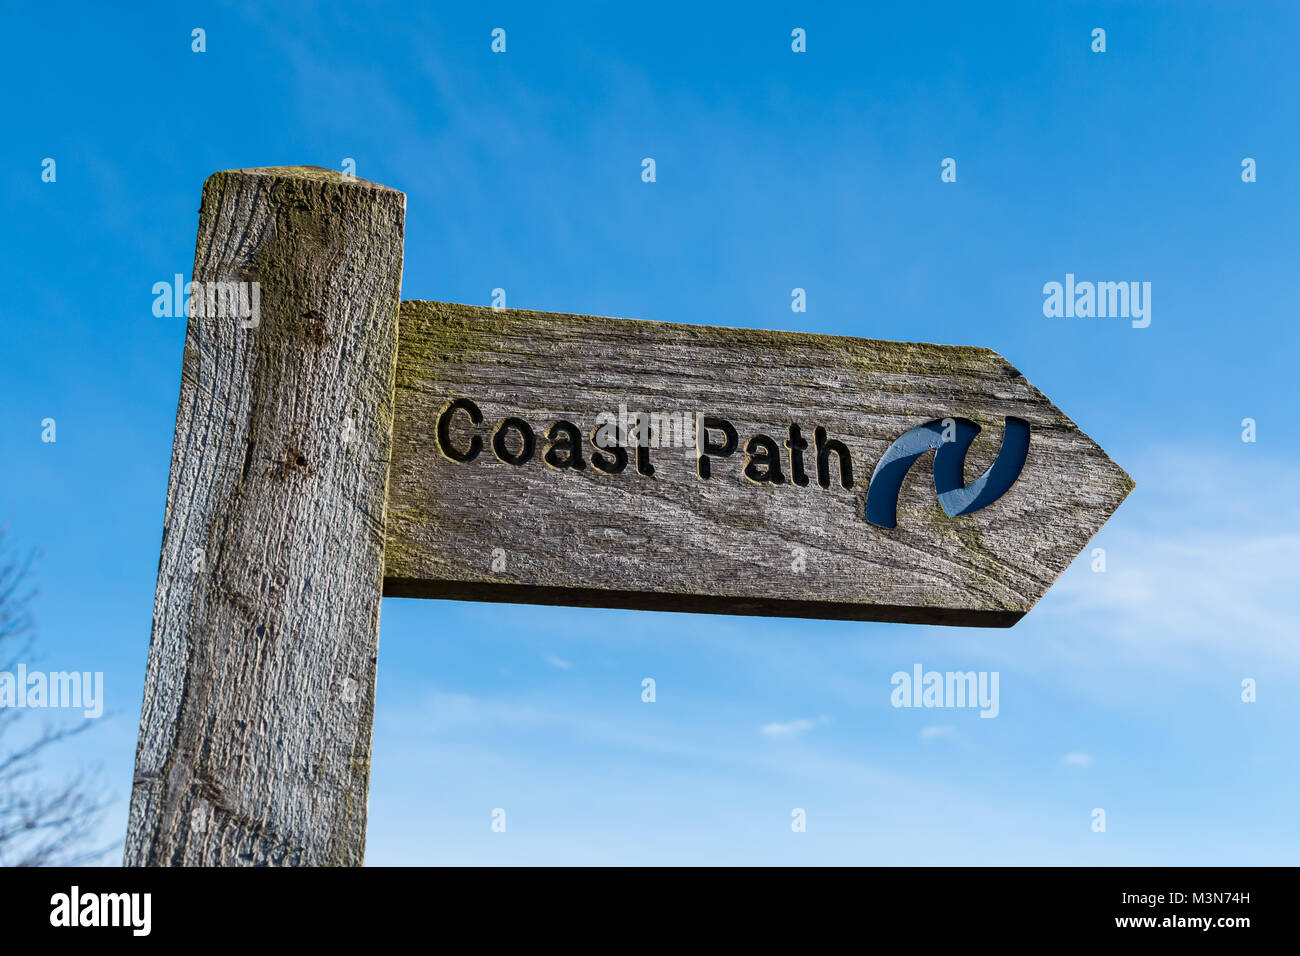 Coast path signpost with emblem of the Northumberland Coast long distance footpath against a clear blue sky background, - Stock Image